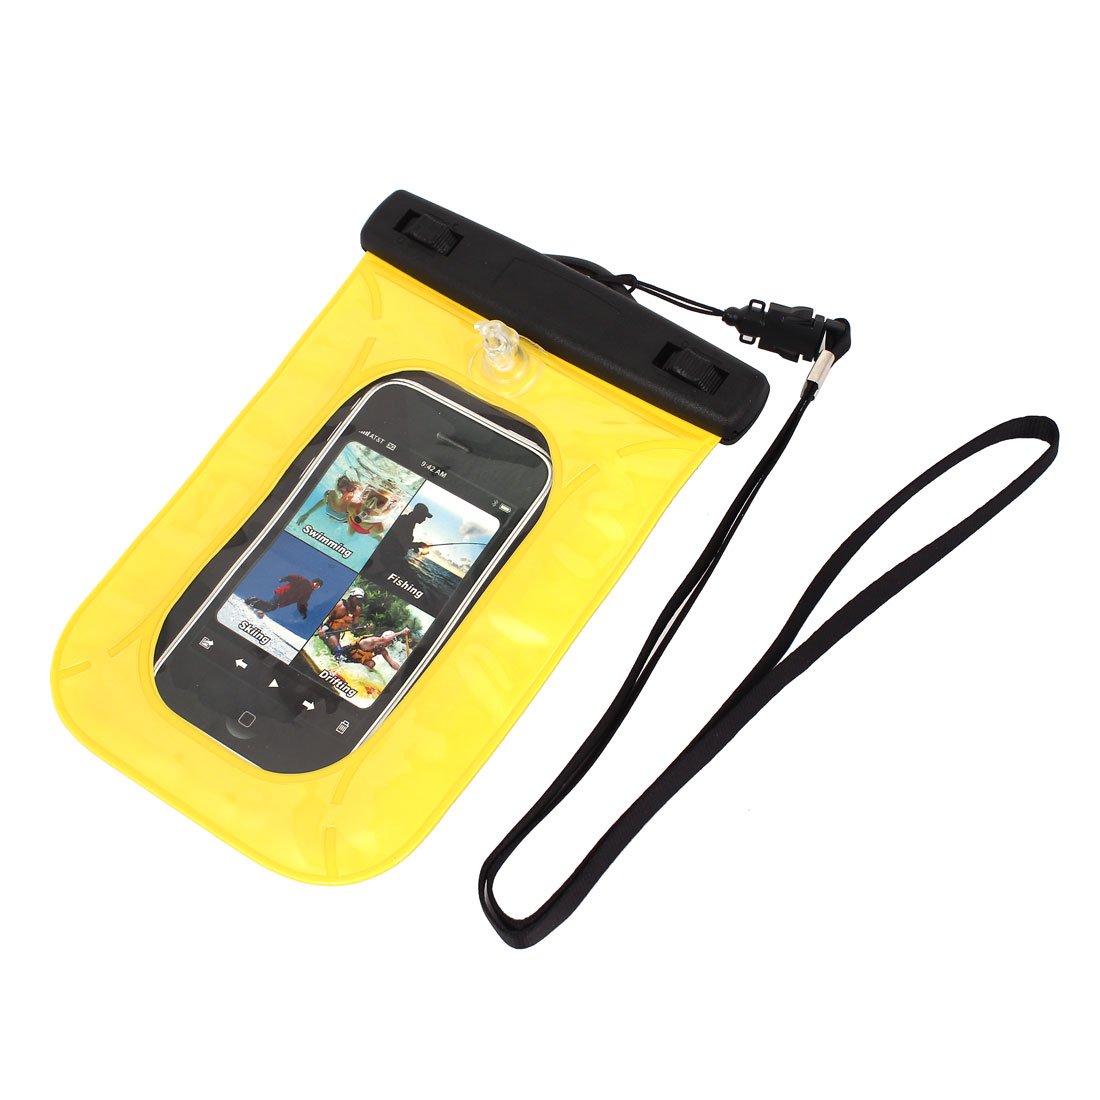 "Waterproof Pouch Underwater Diving Dry Bag Case Cover Yellow for 4"" Cell Phone"